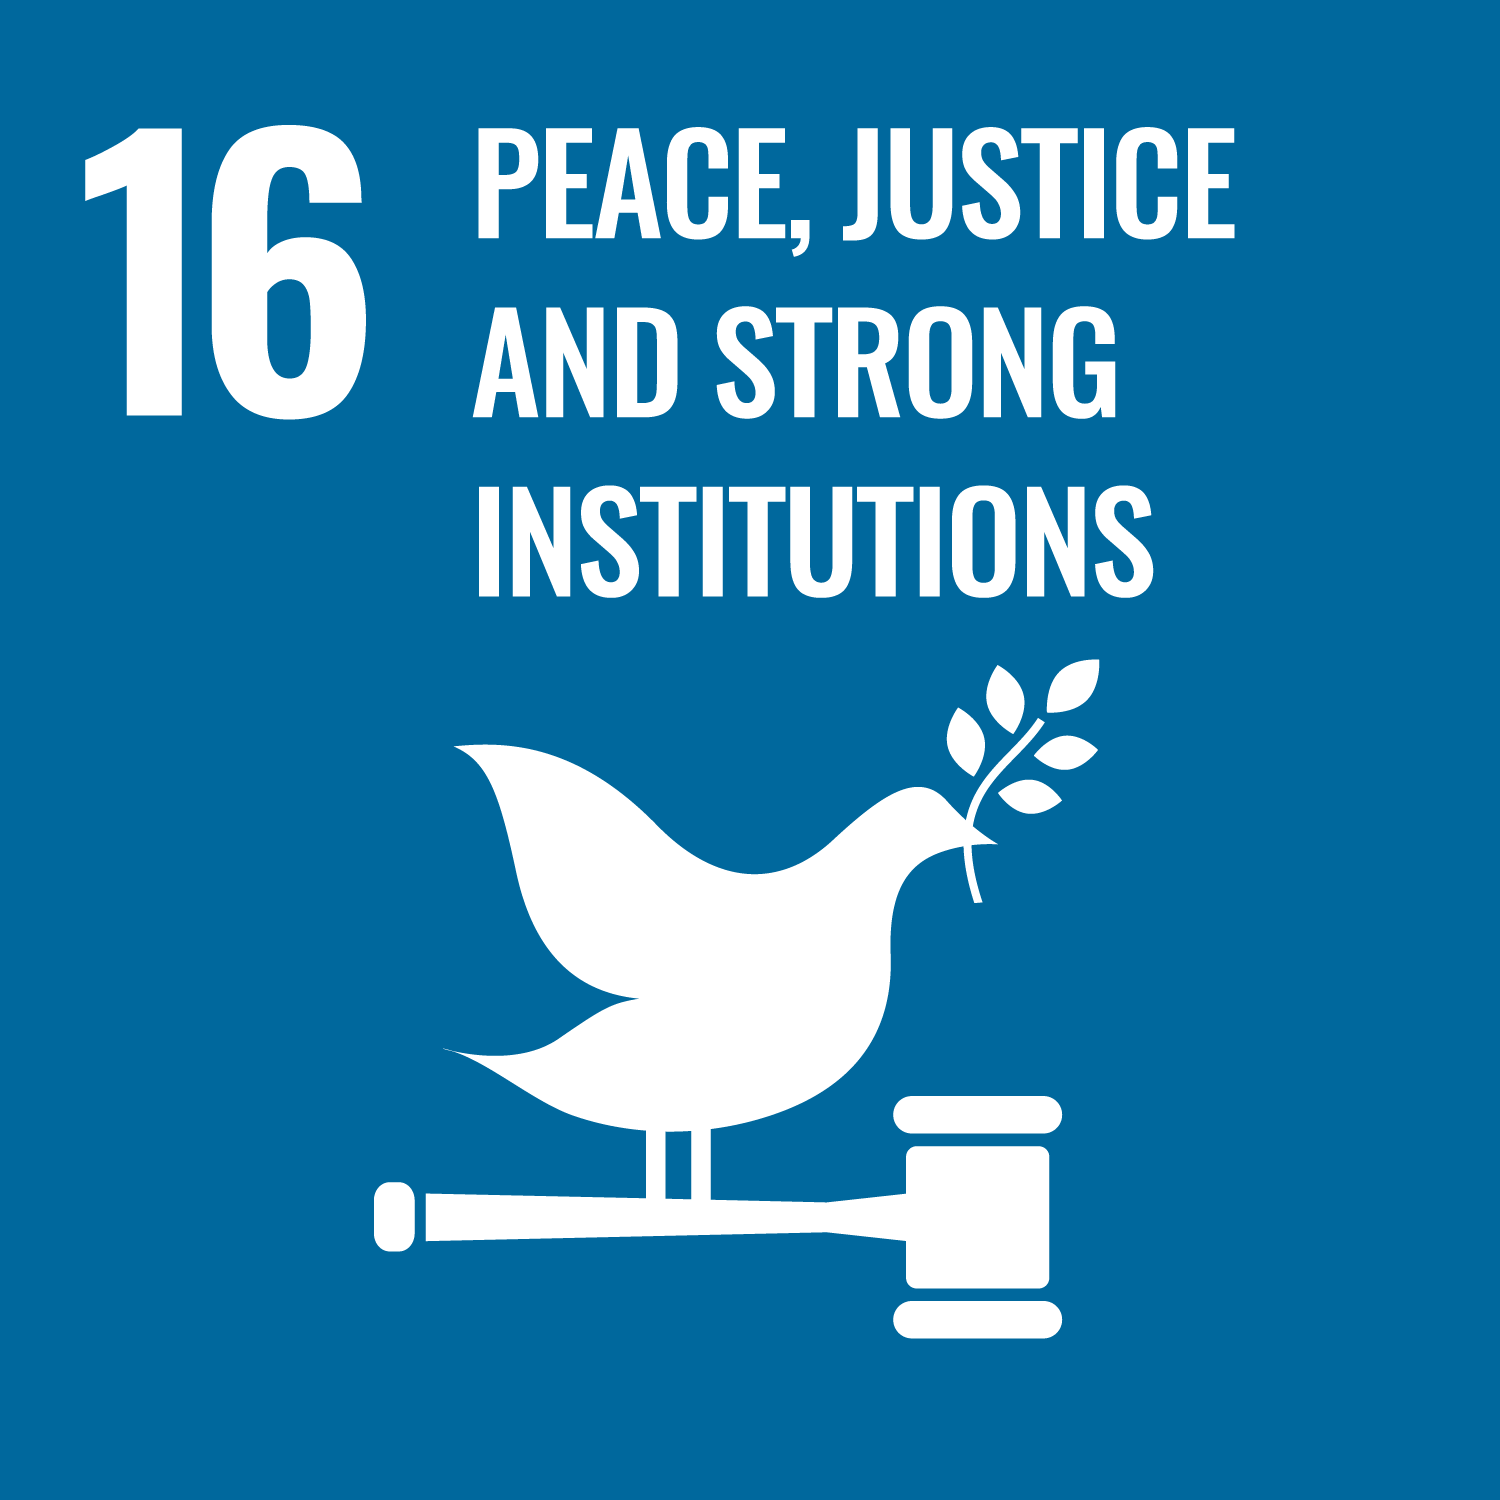 SDG 16 - Peace, Injustice and Strong Institutions